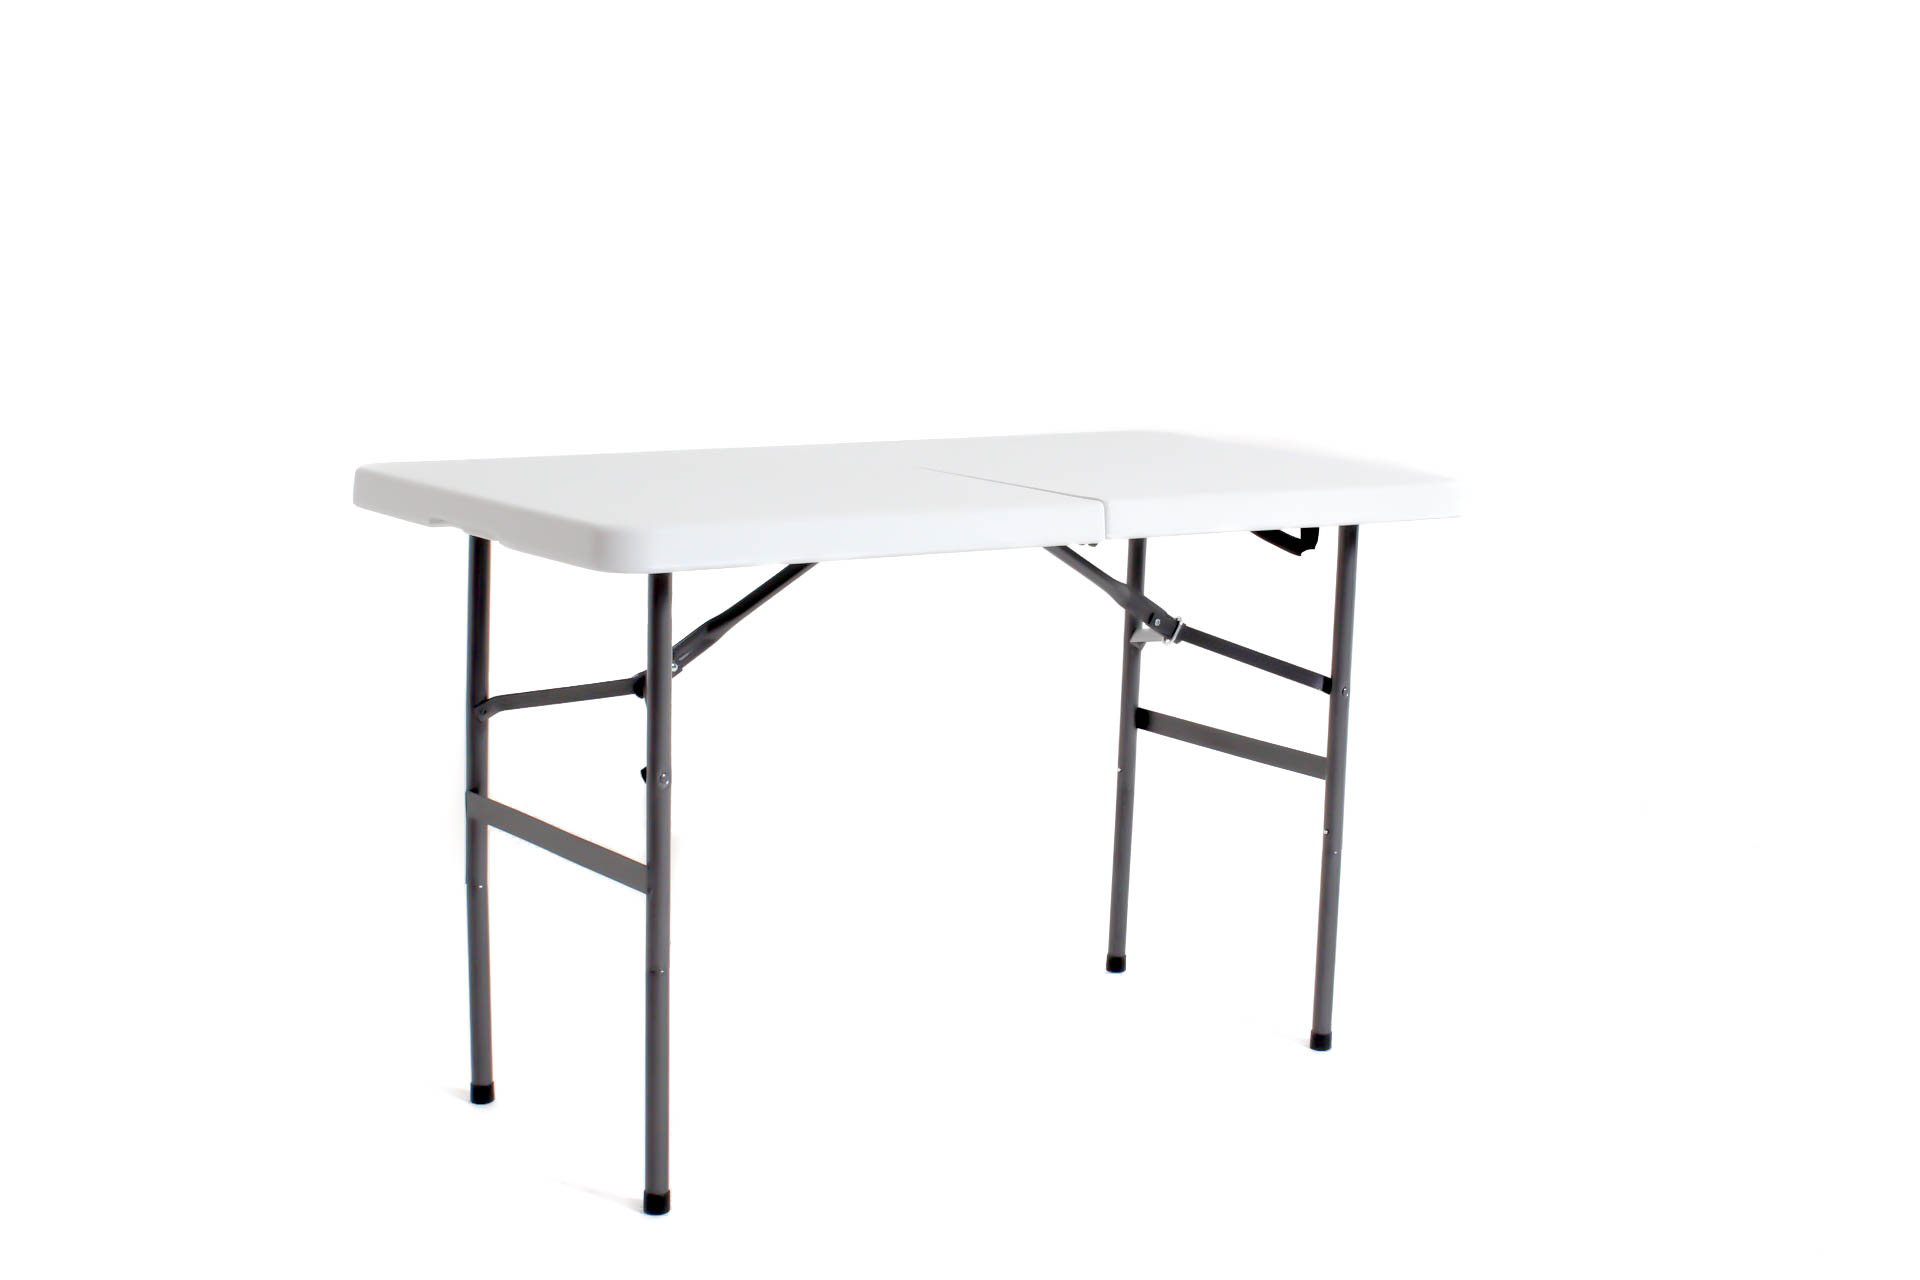 4Ft Folding Exhibition Table